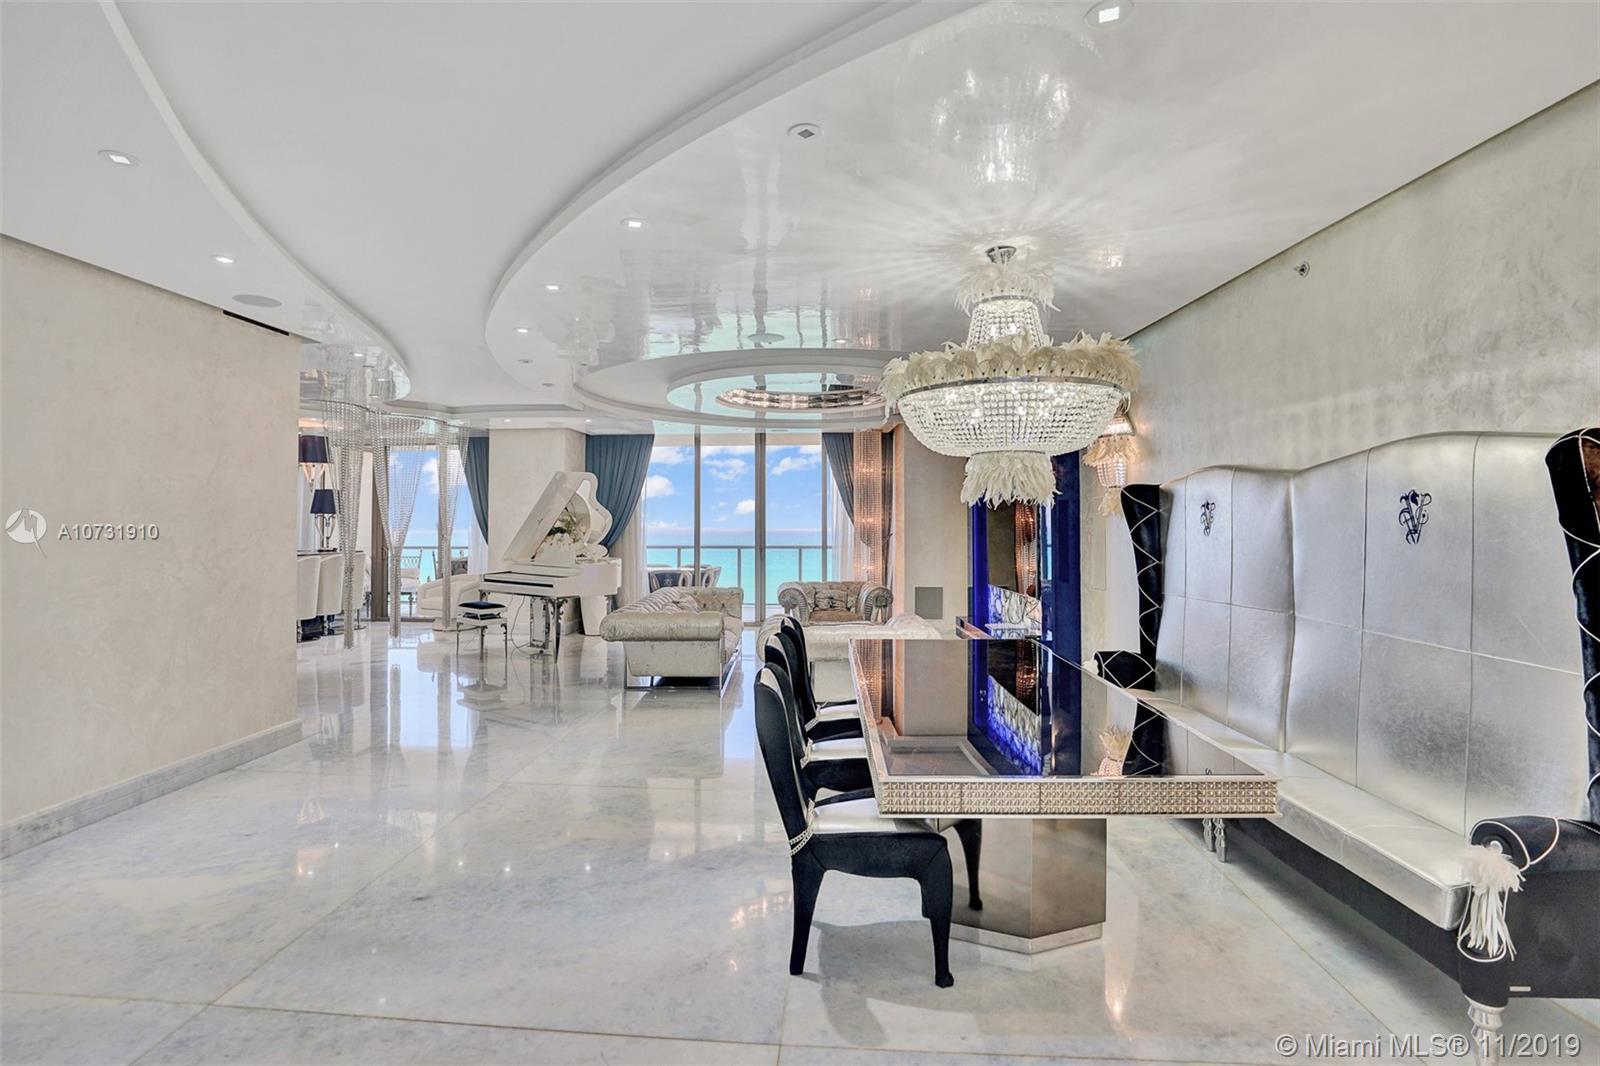 Gorgeous spacious unit with direct ocean and city views, 3 bdr + DEN/3.5bth in St Regis, Bal Harbour